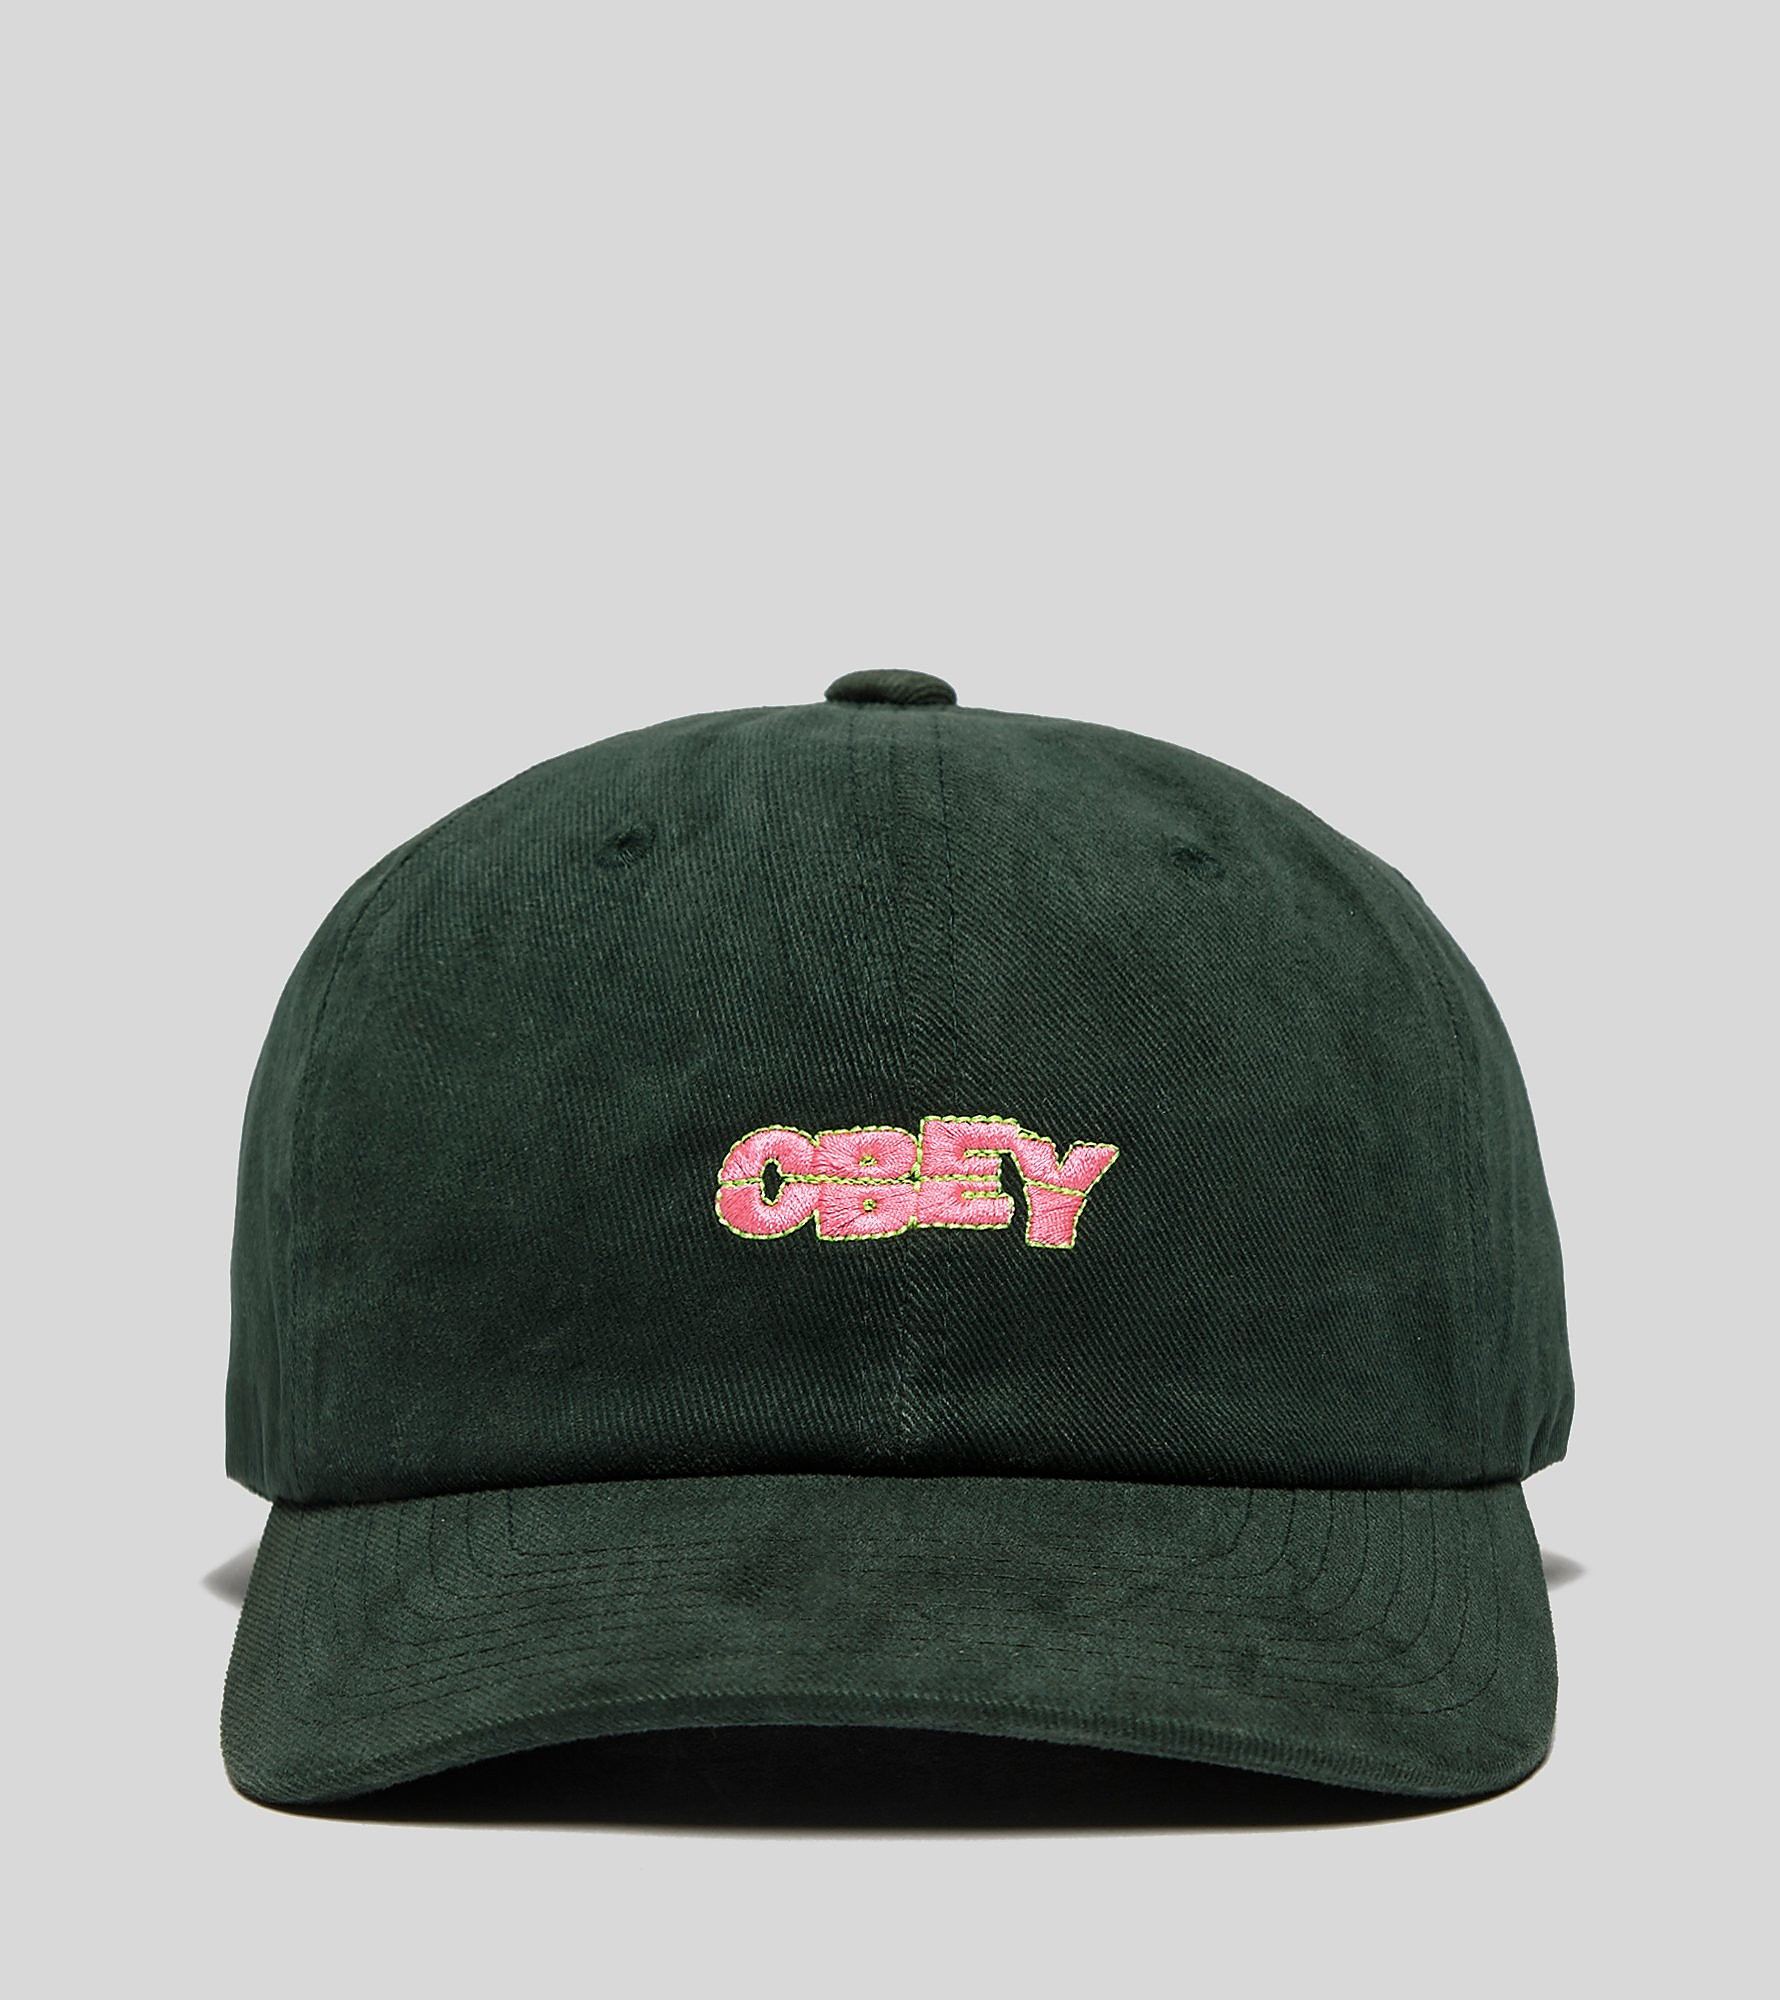 Obey Ripped 6 Panel